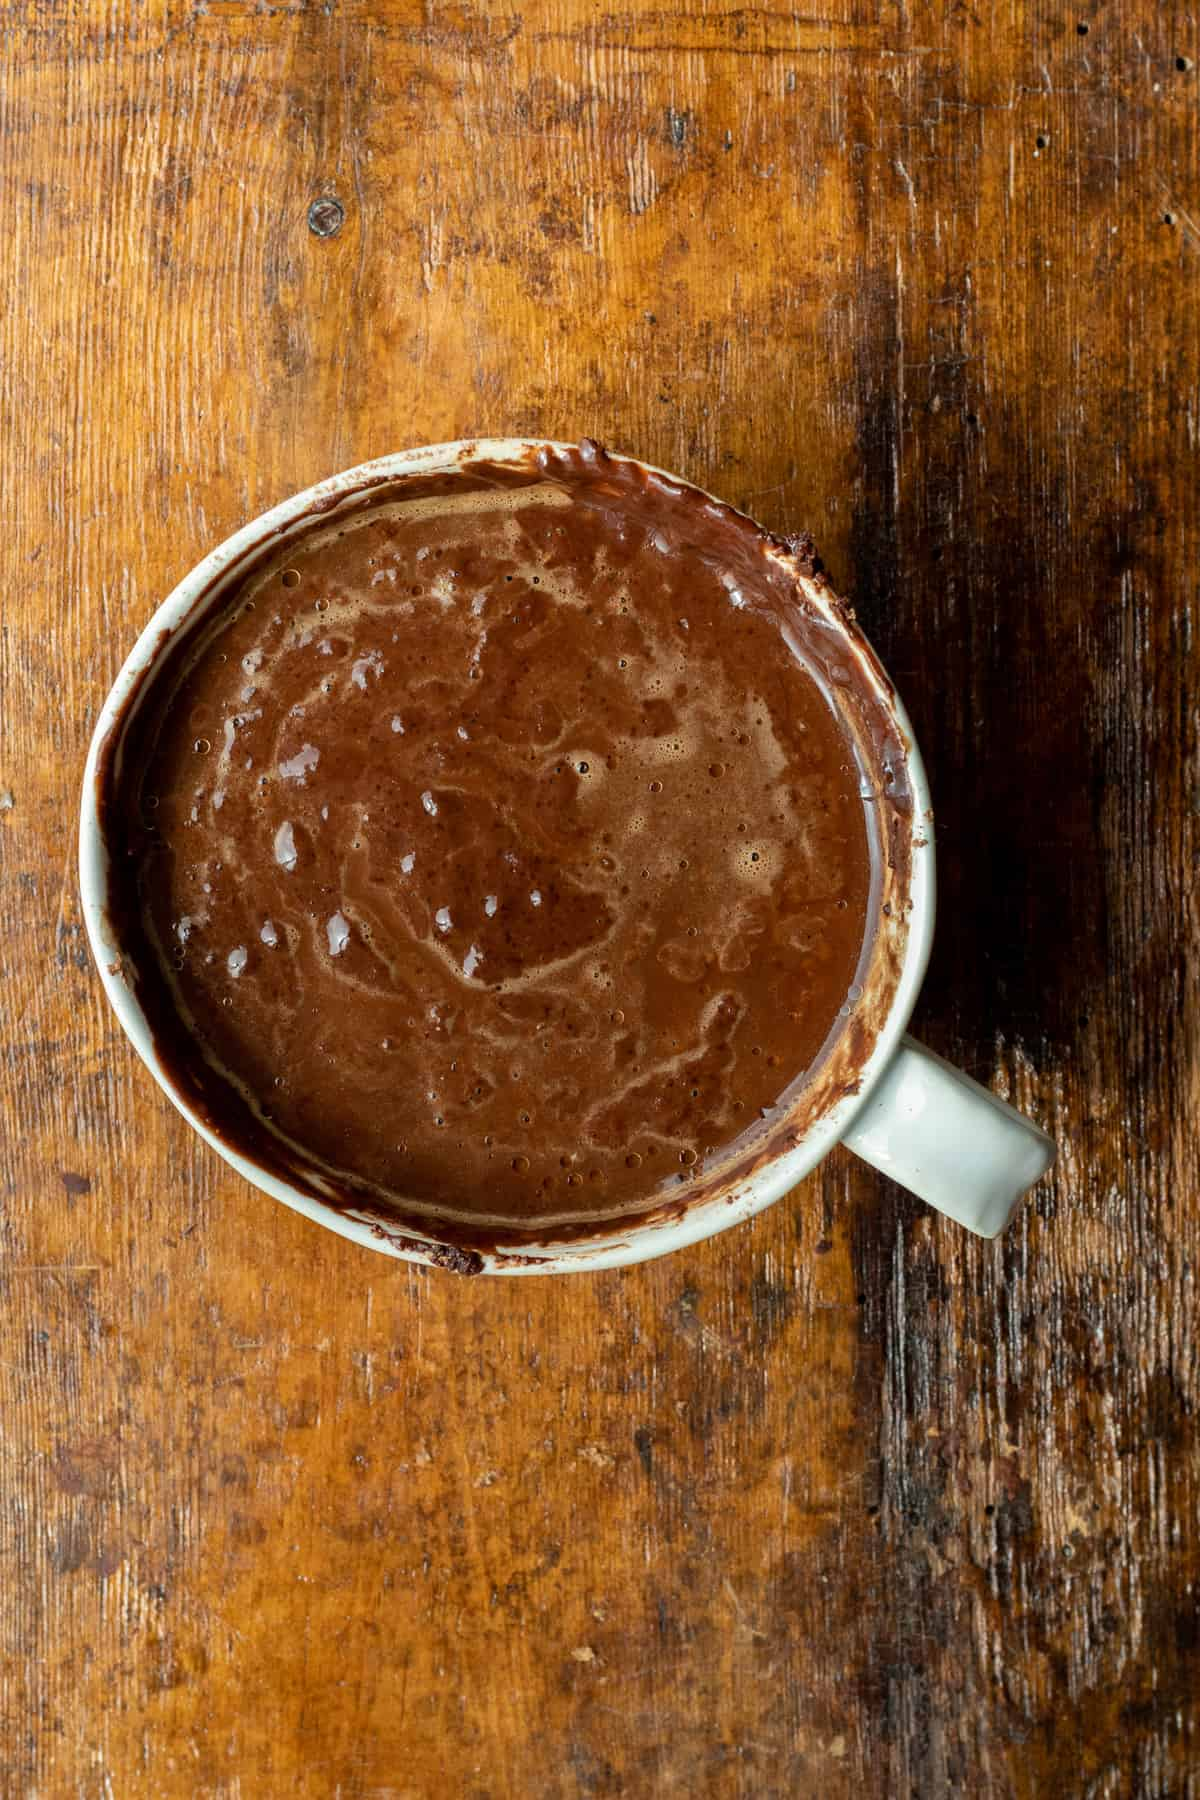 Chocolate Mug cake batter in white mug